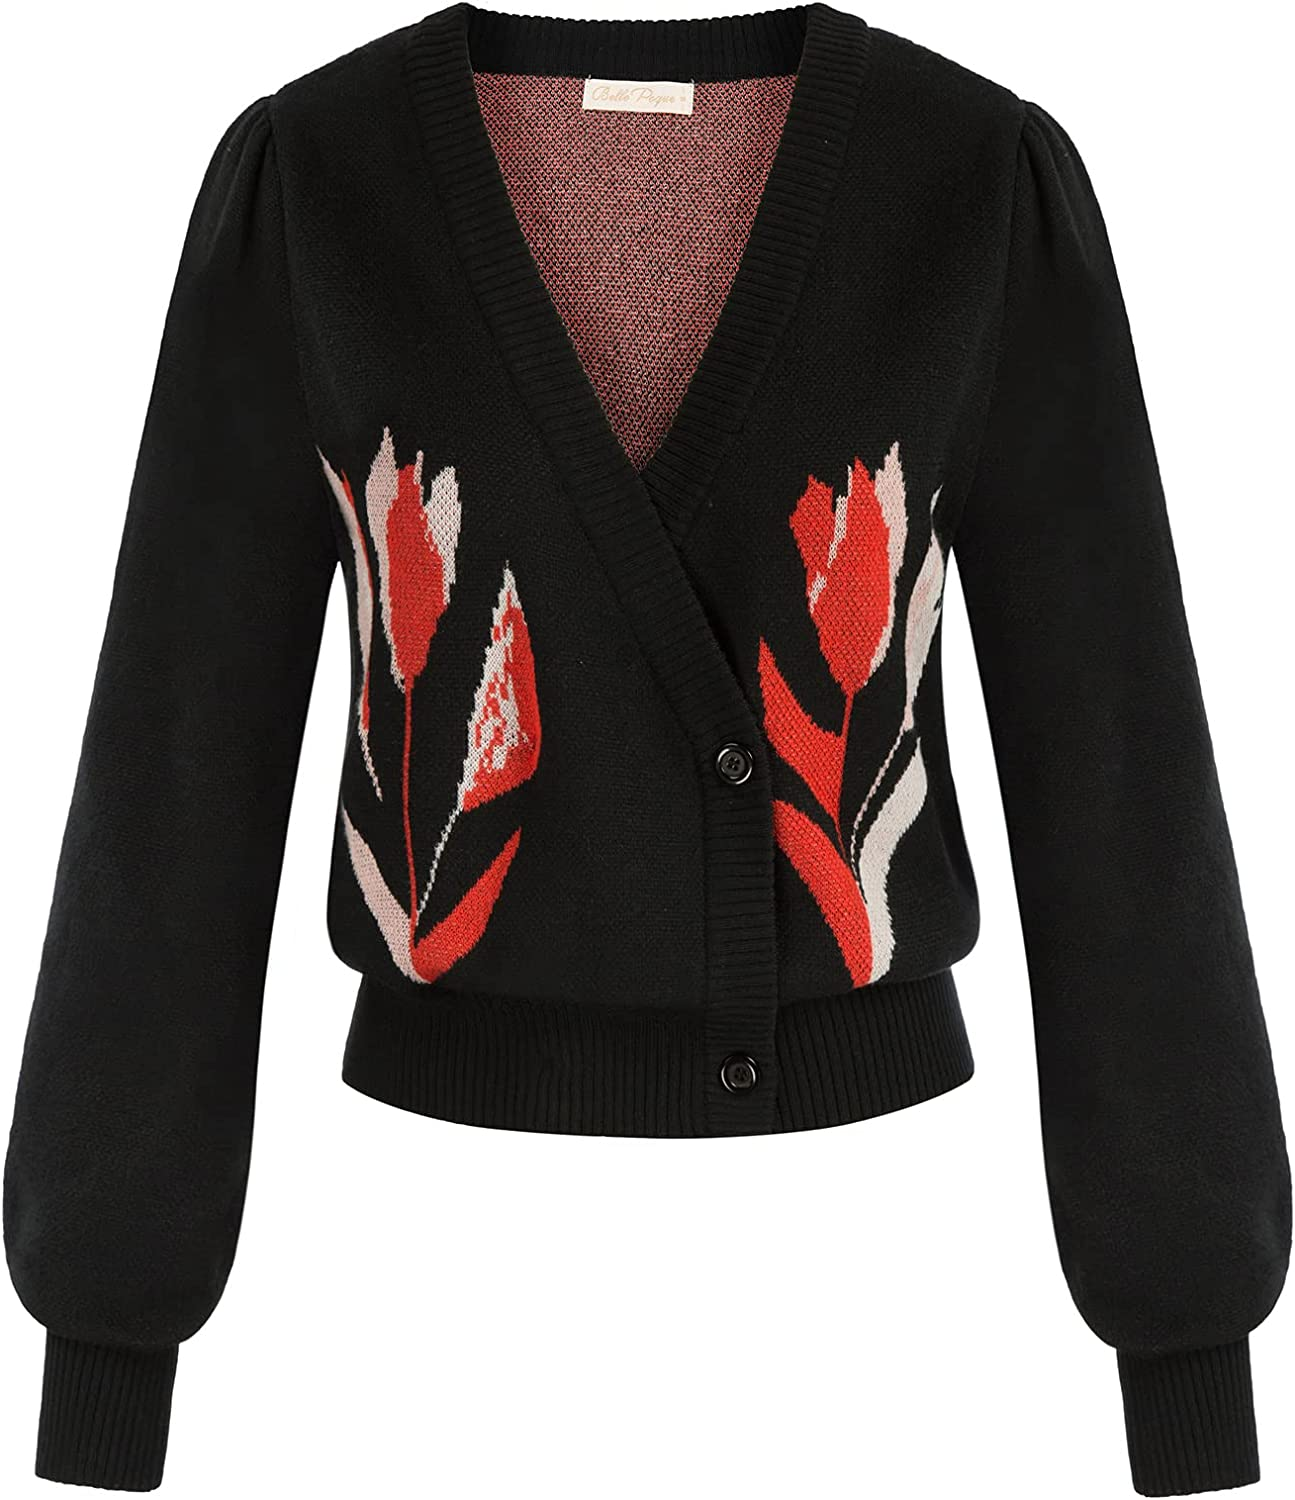 Belle Poque Women's Wrap V Neck Long Sleeve Floral Cropped Knit Cardigan Sweater